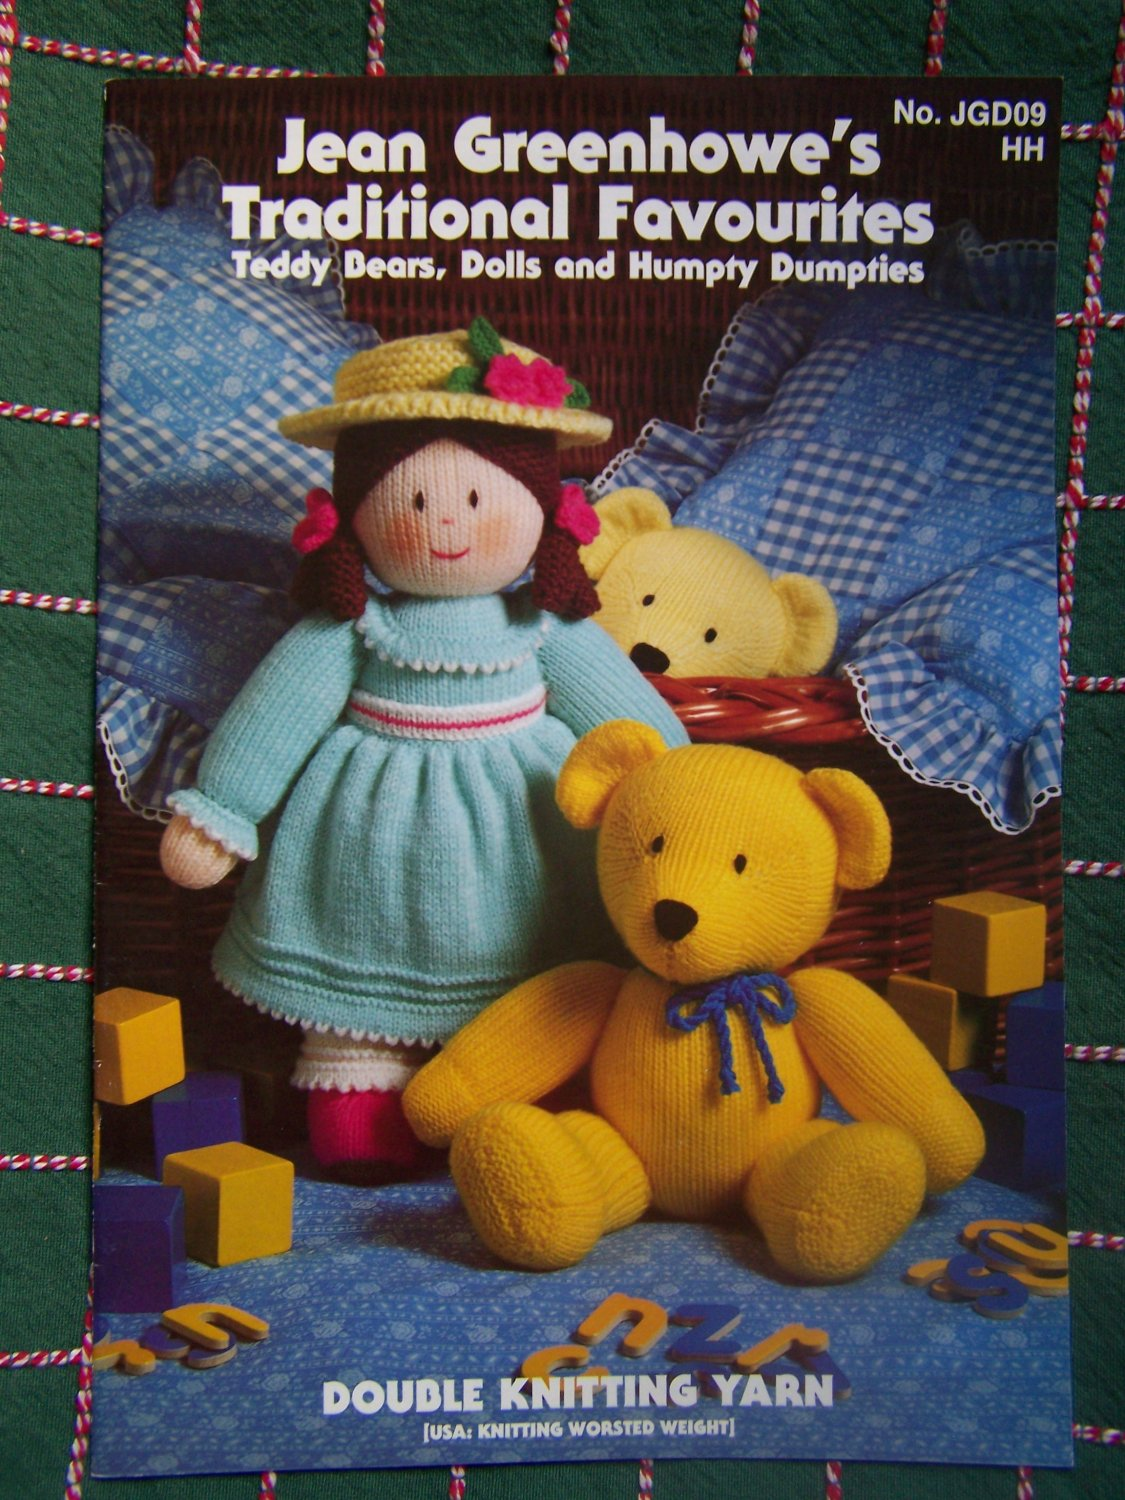 Jean Greenhowe's Traditional Favourites Knitting Patterns Teddy Bears Dolls Humpty Animals